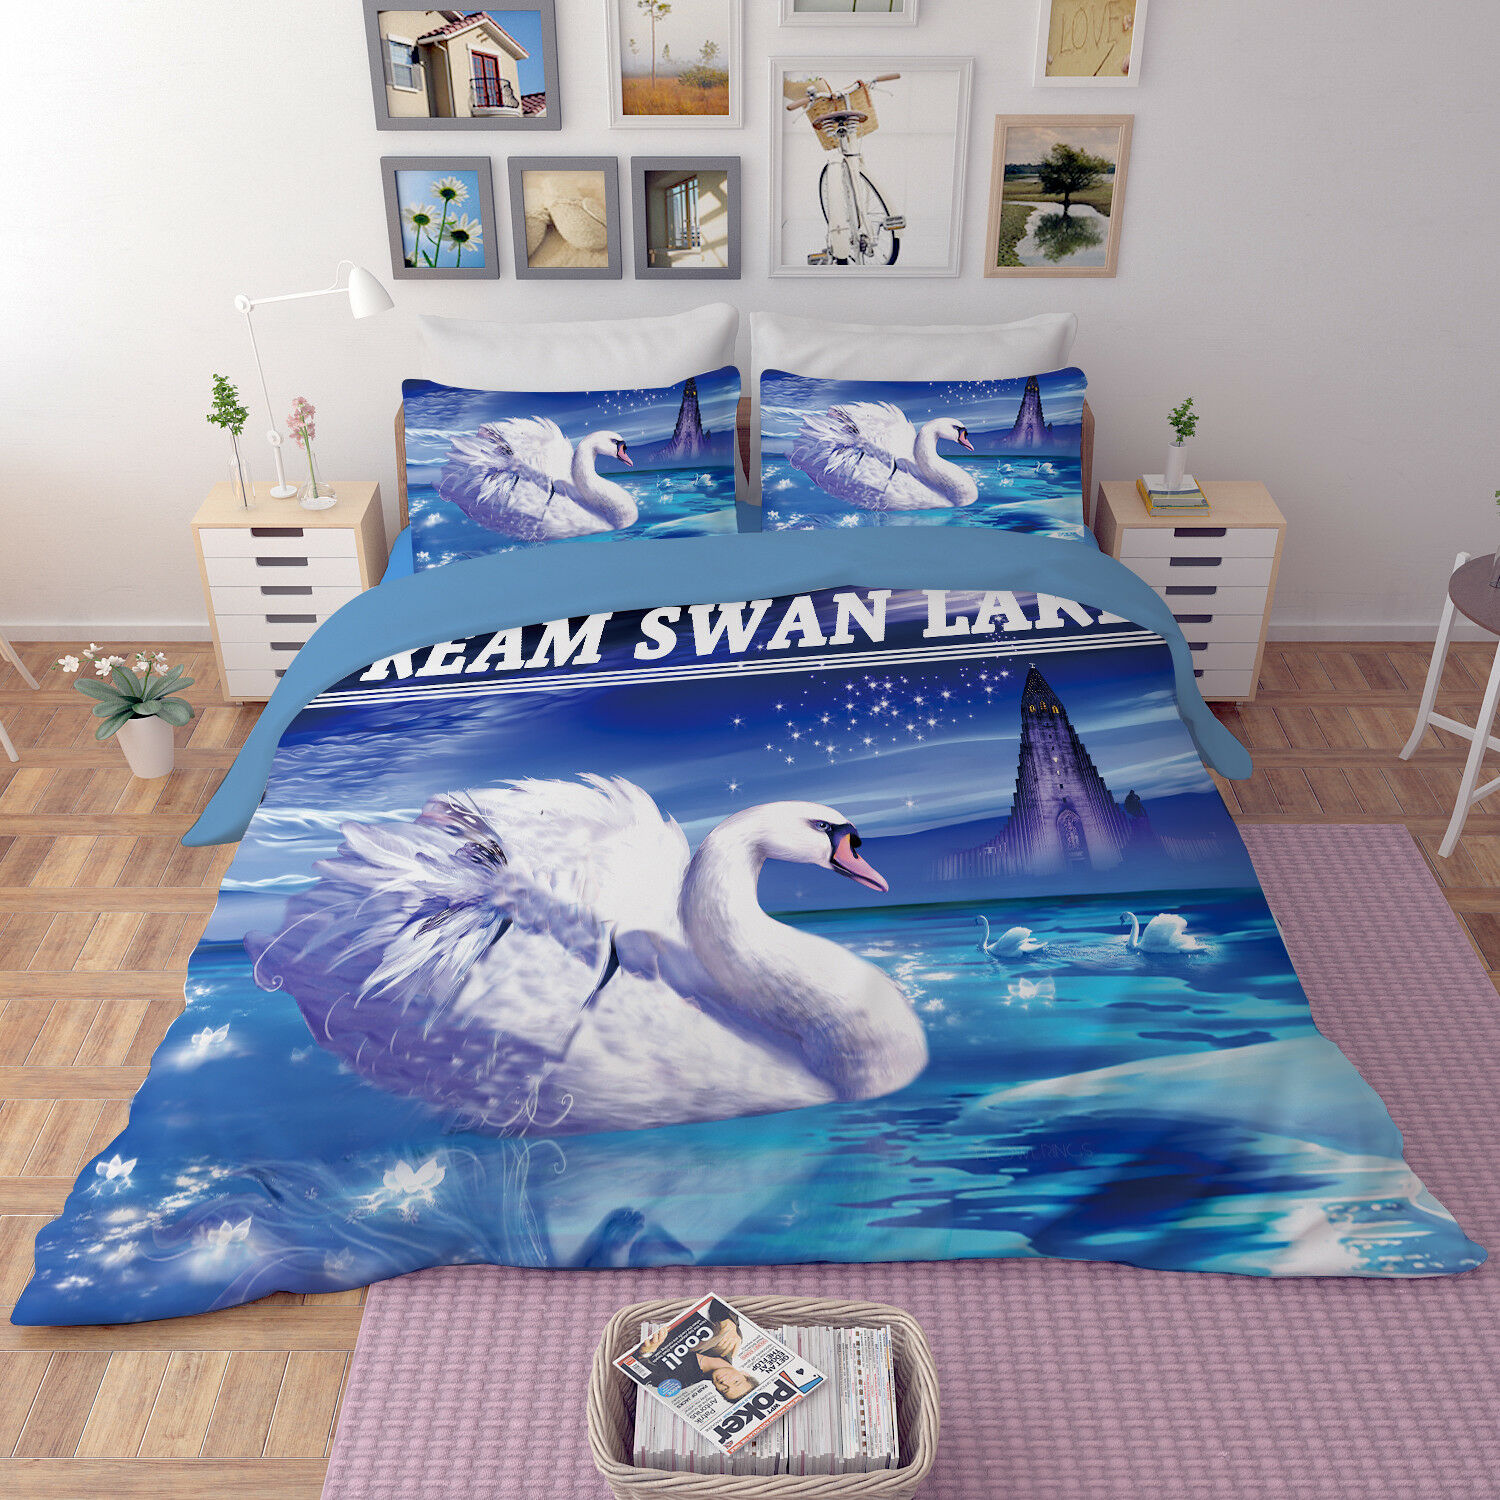 3D Swan Painted 806 Bed Pillowcases Quilt Duvet Cover Set Single Queen UK Kyra